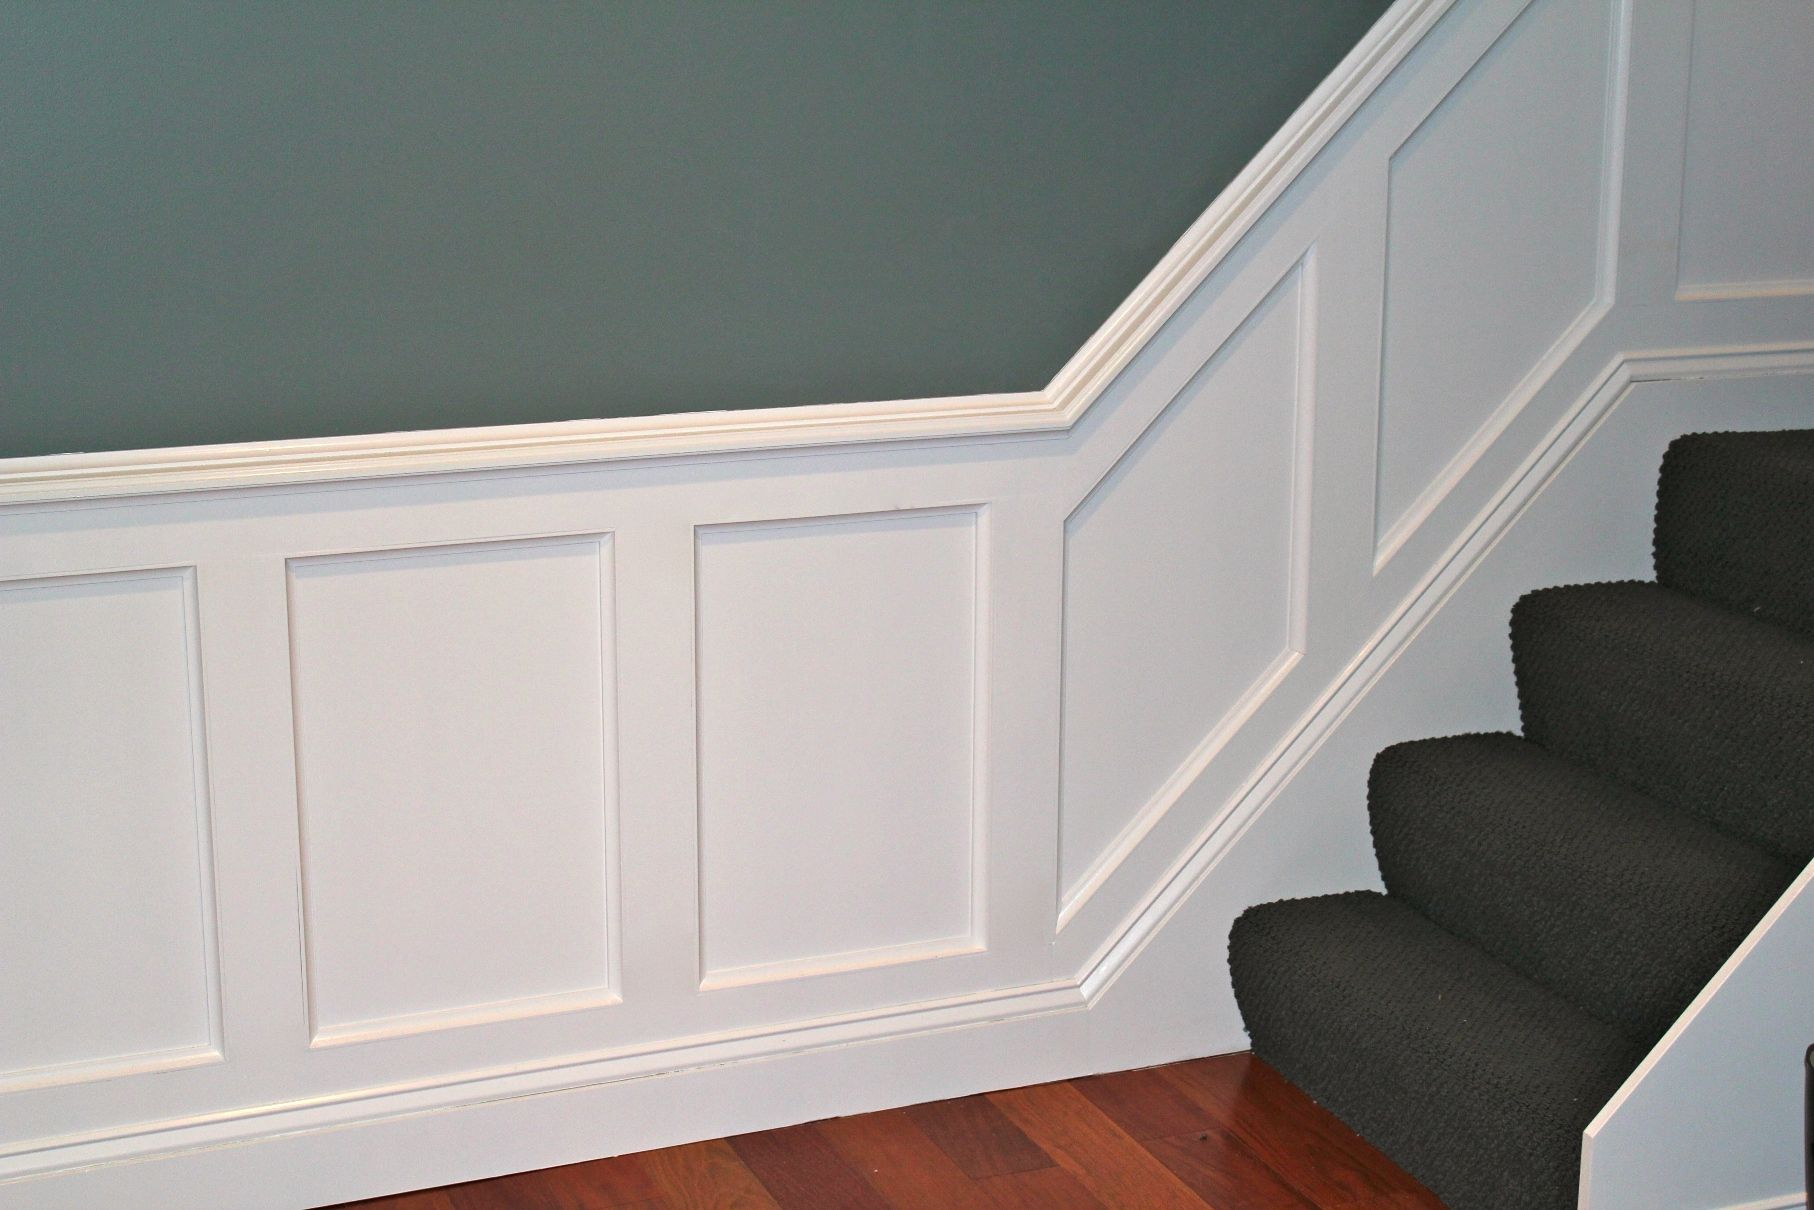 Wainscoting Installations Ranging From Simple Beaded Or Other